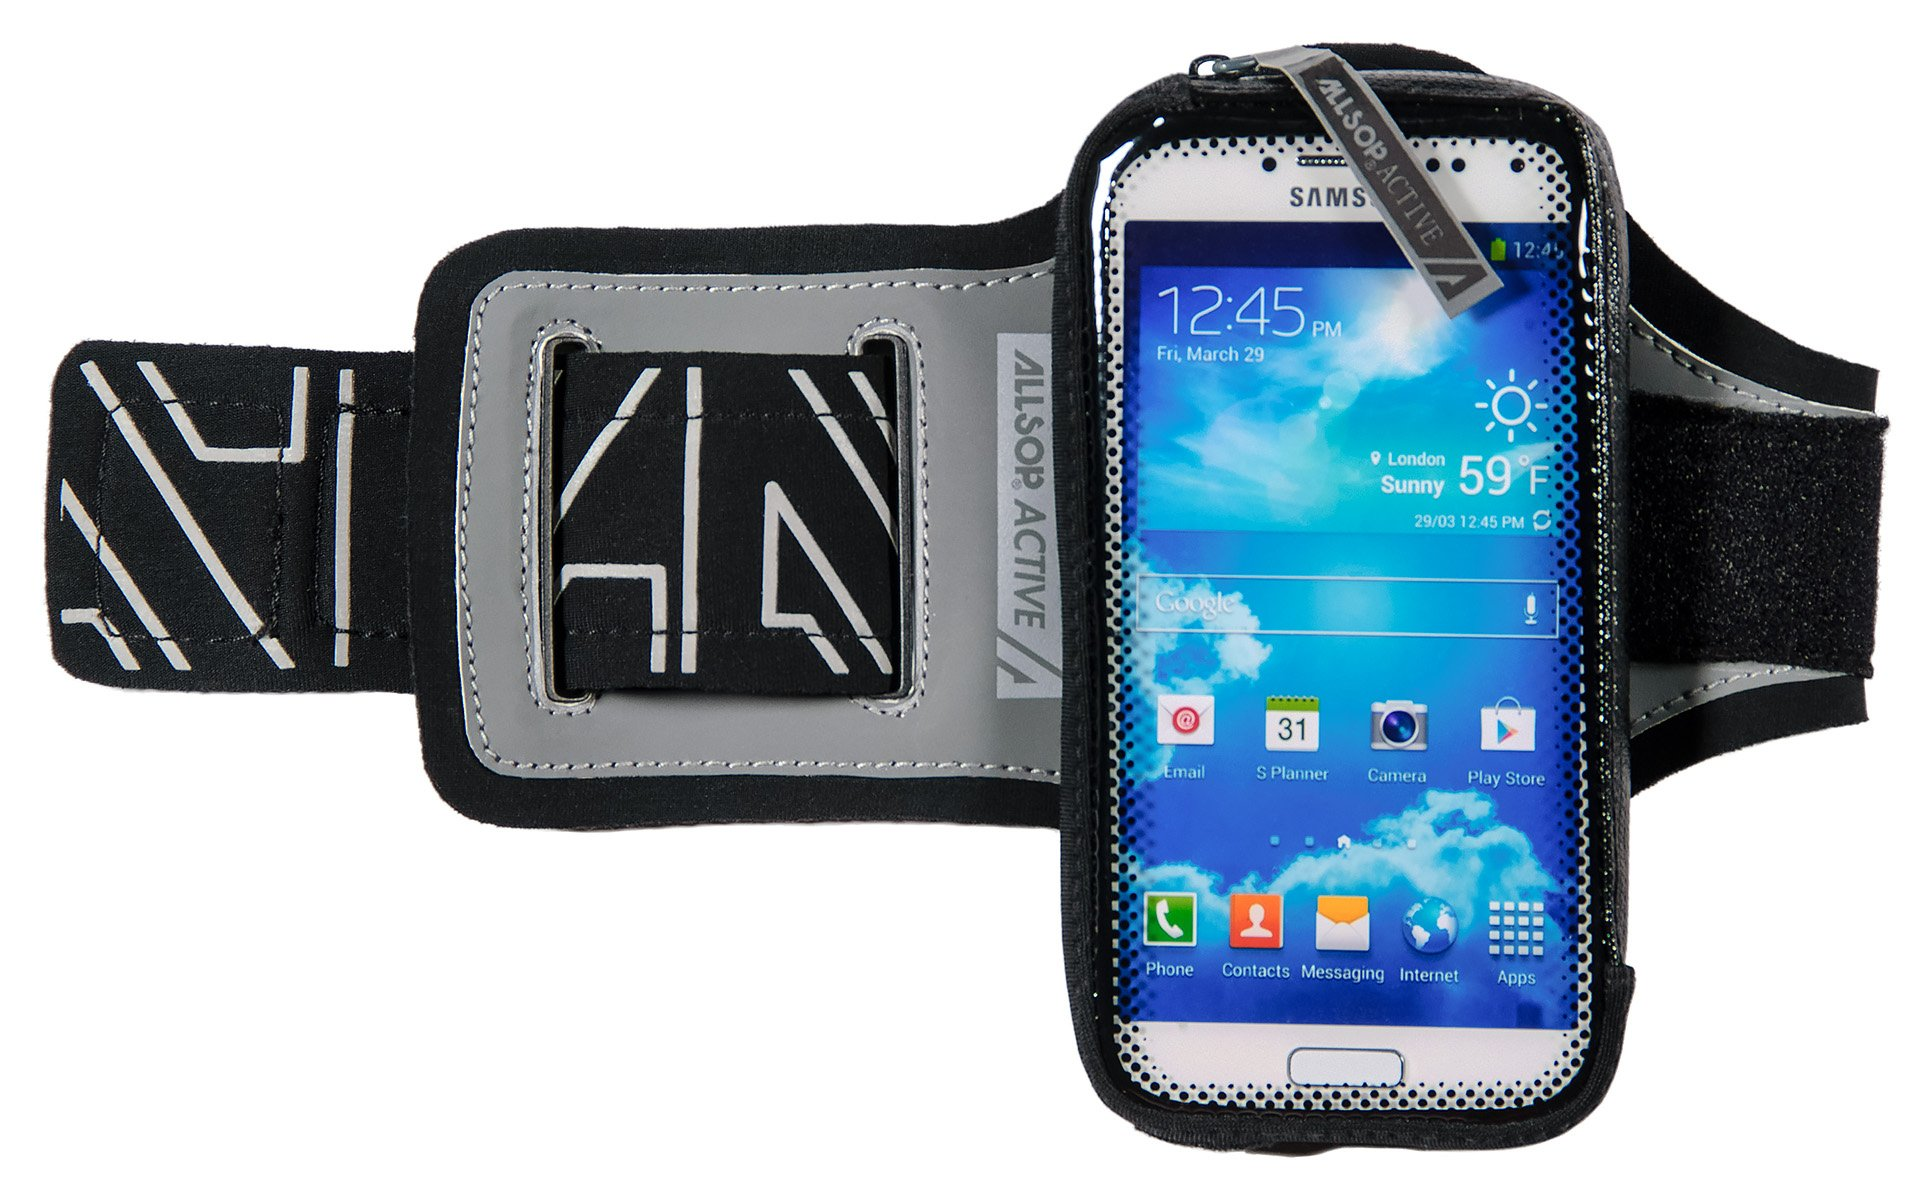 ClickGo Smart Phone Armband with Quick Release and Weather Resistant Sweat Proof Pouch for Running/Exercise/Sports fits Phones up to 5.7'' Including iPhone 7 / SE / 6/5 / 4 & Galaxy S6 / S5 / S4